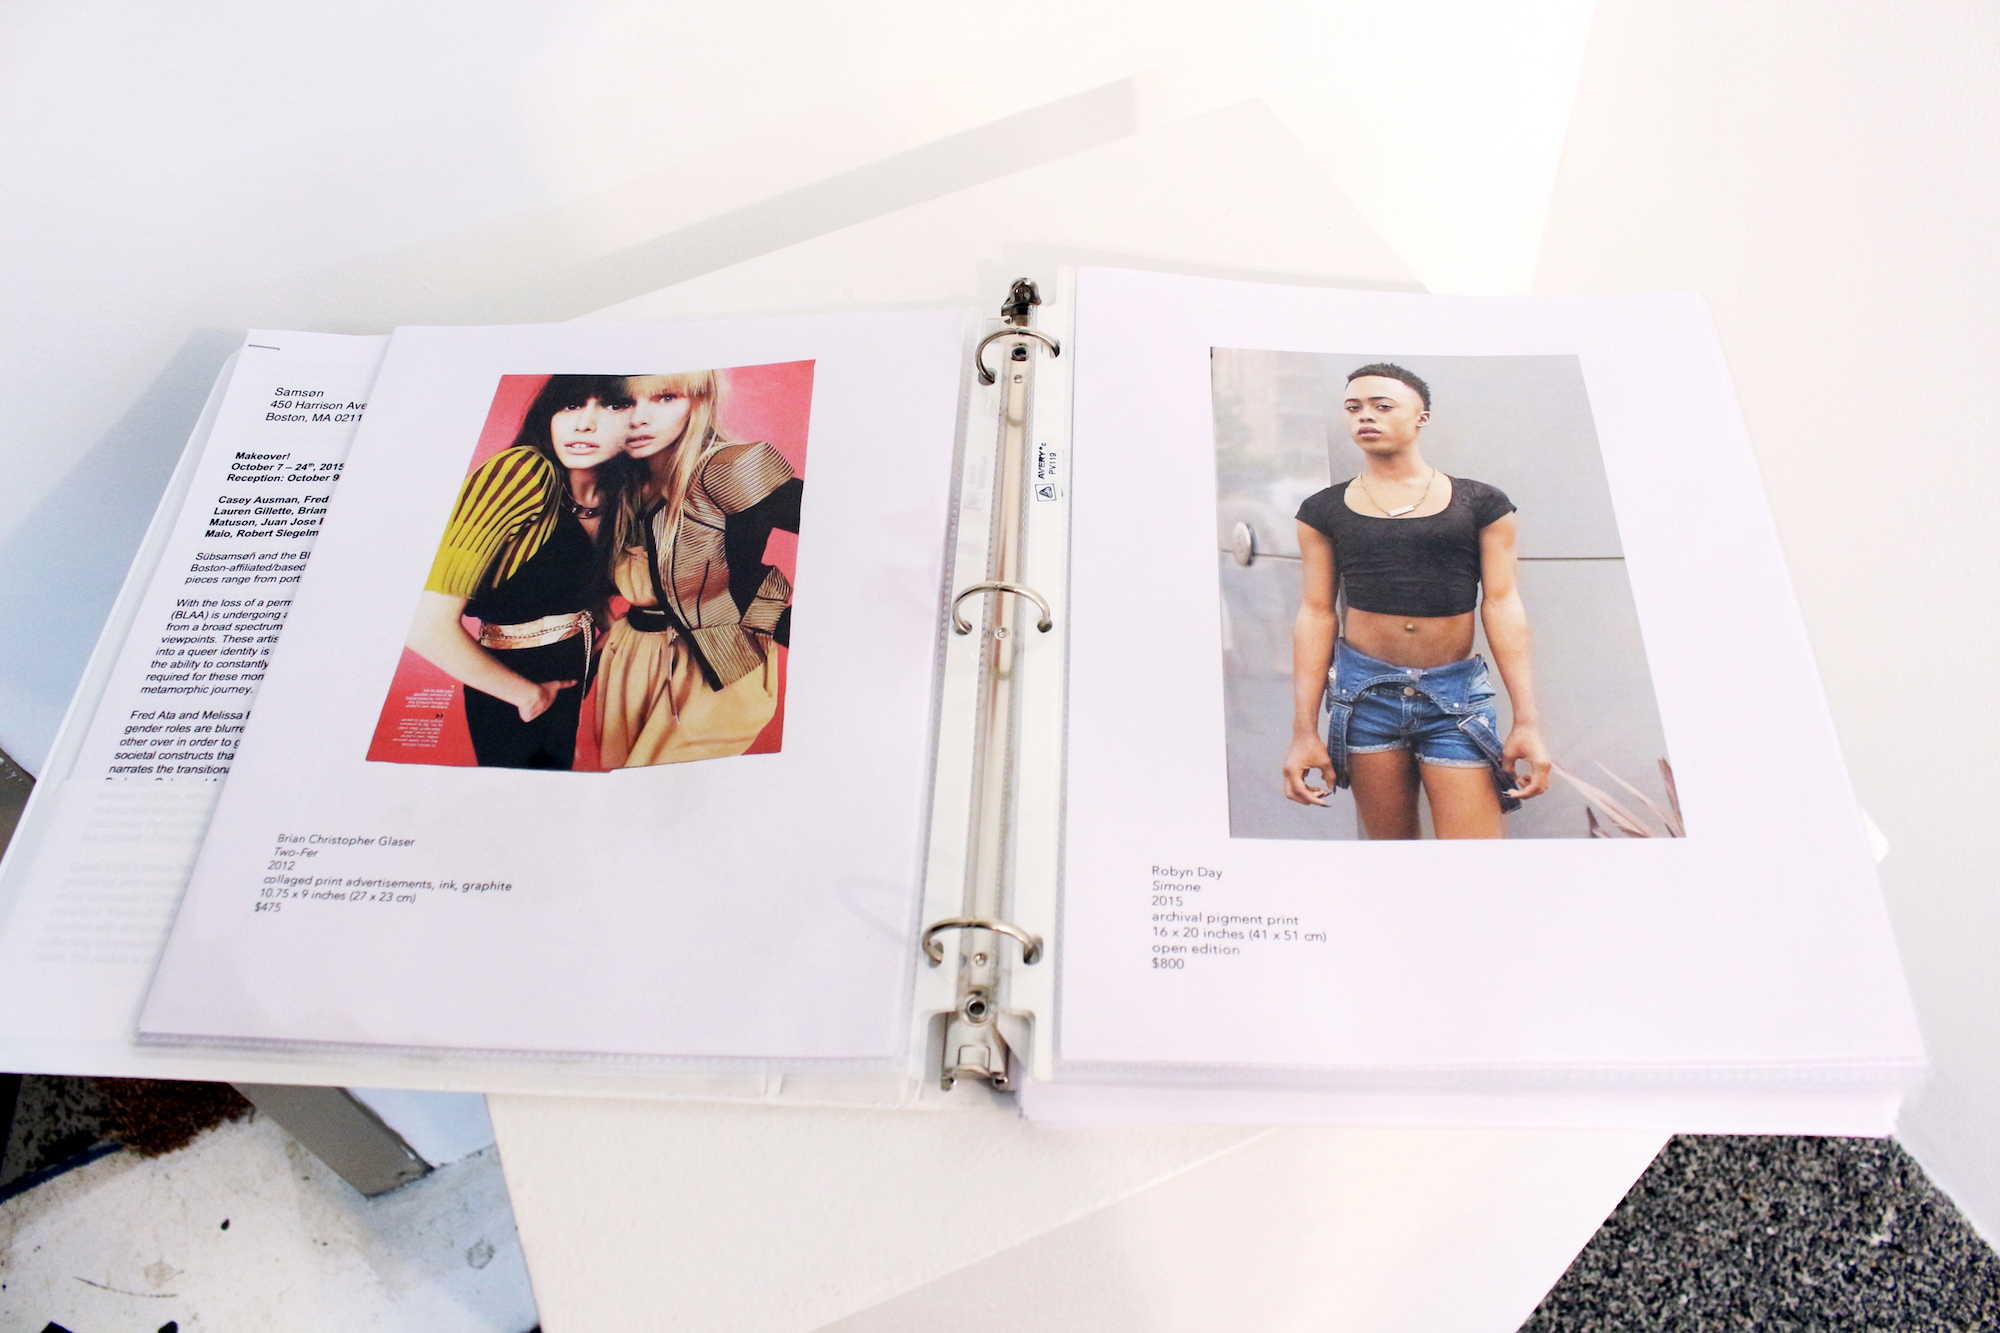 BLAA x Subsamson Makeover! show portfolio, featuring works of (left) Brian Christopher Glaser and (right) Robyn Day.